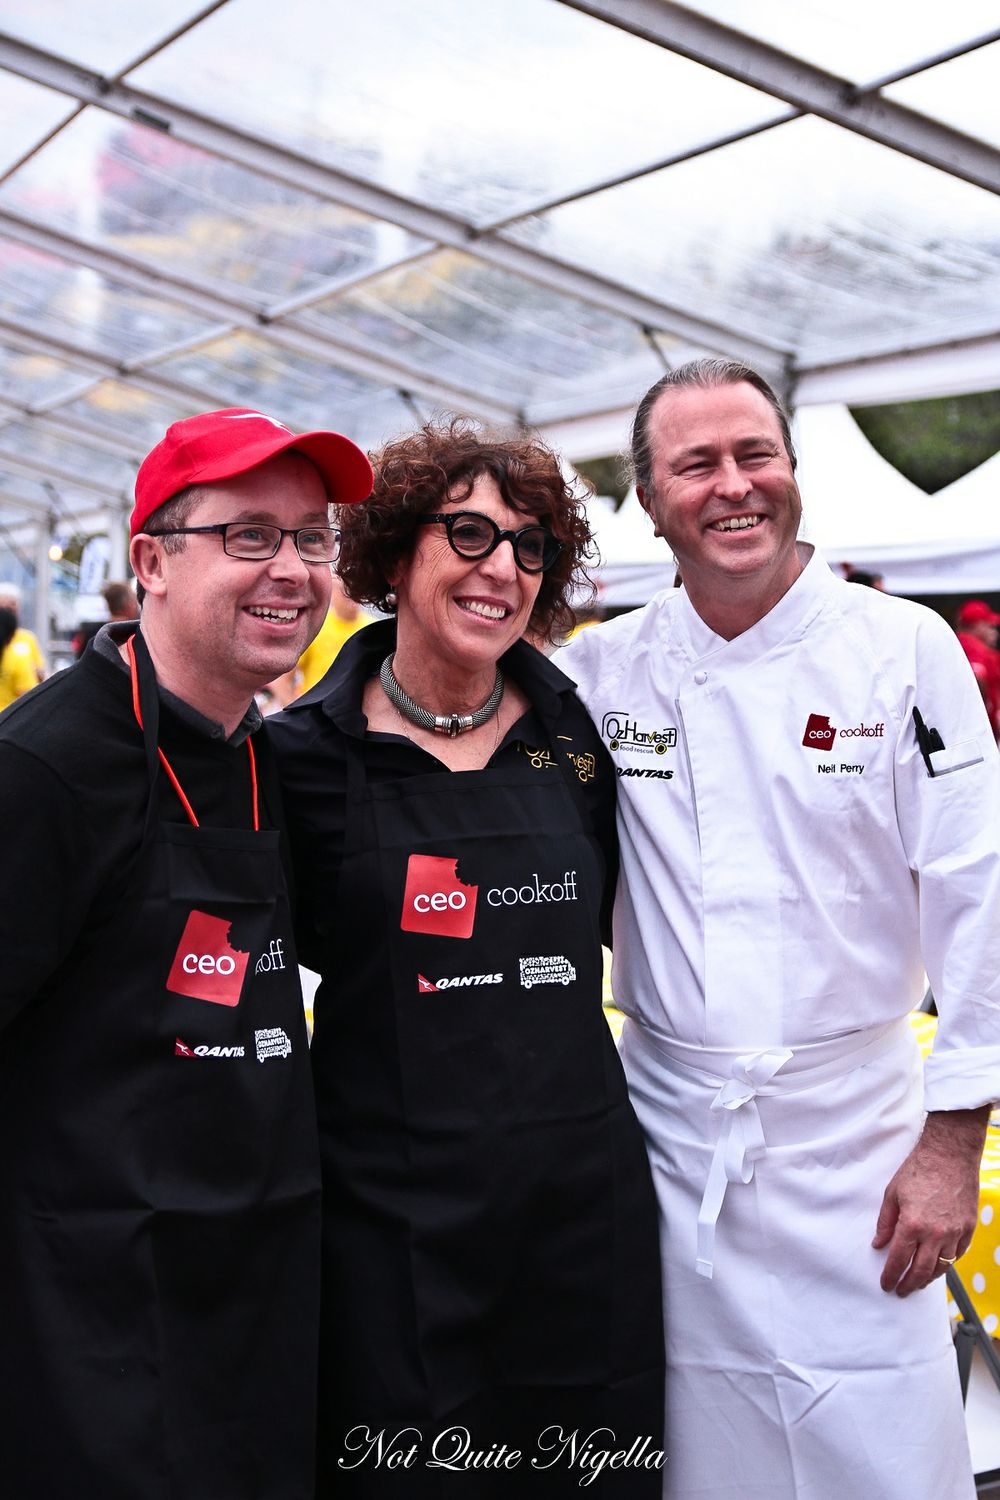 ozharvest ceo cook off-2